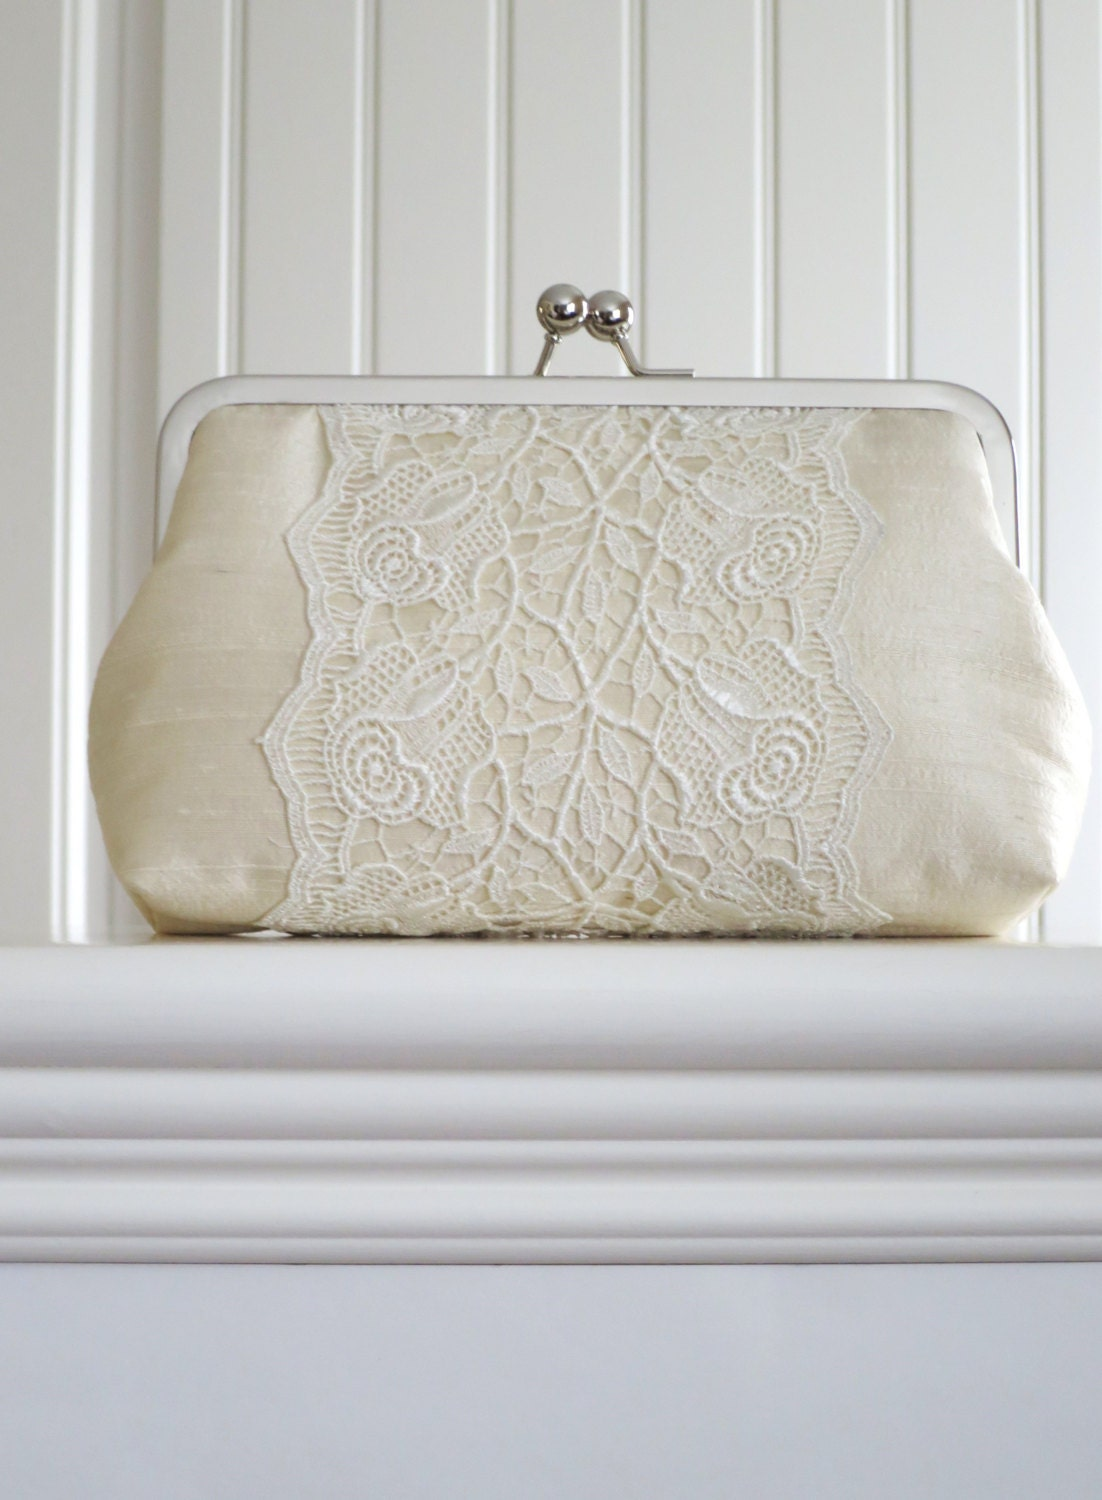 Silk And Rose Lace Clutch,Bridal Accessories,Cream Clutch,Wedding Clutch,Bridesmaid Clutch